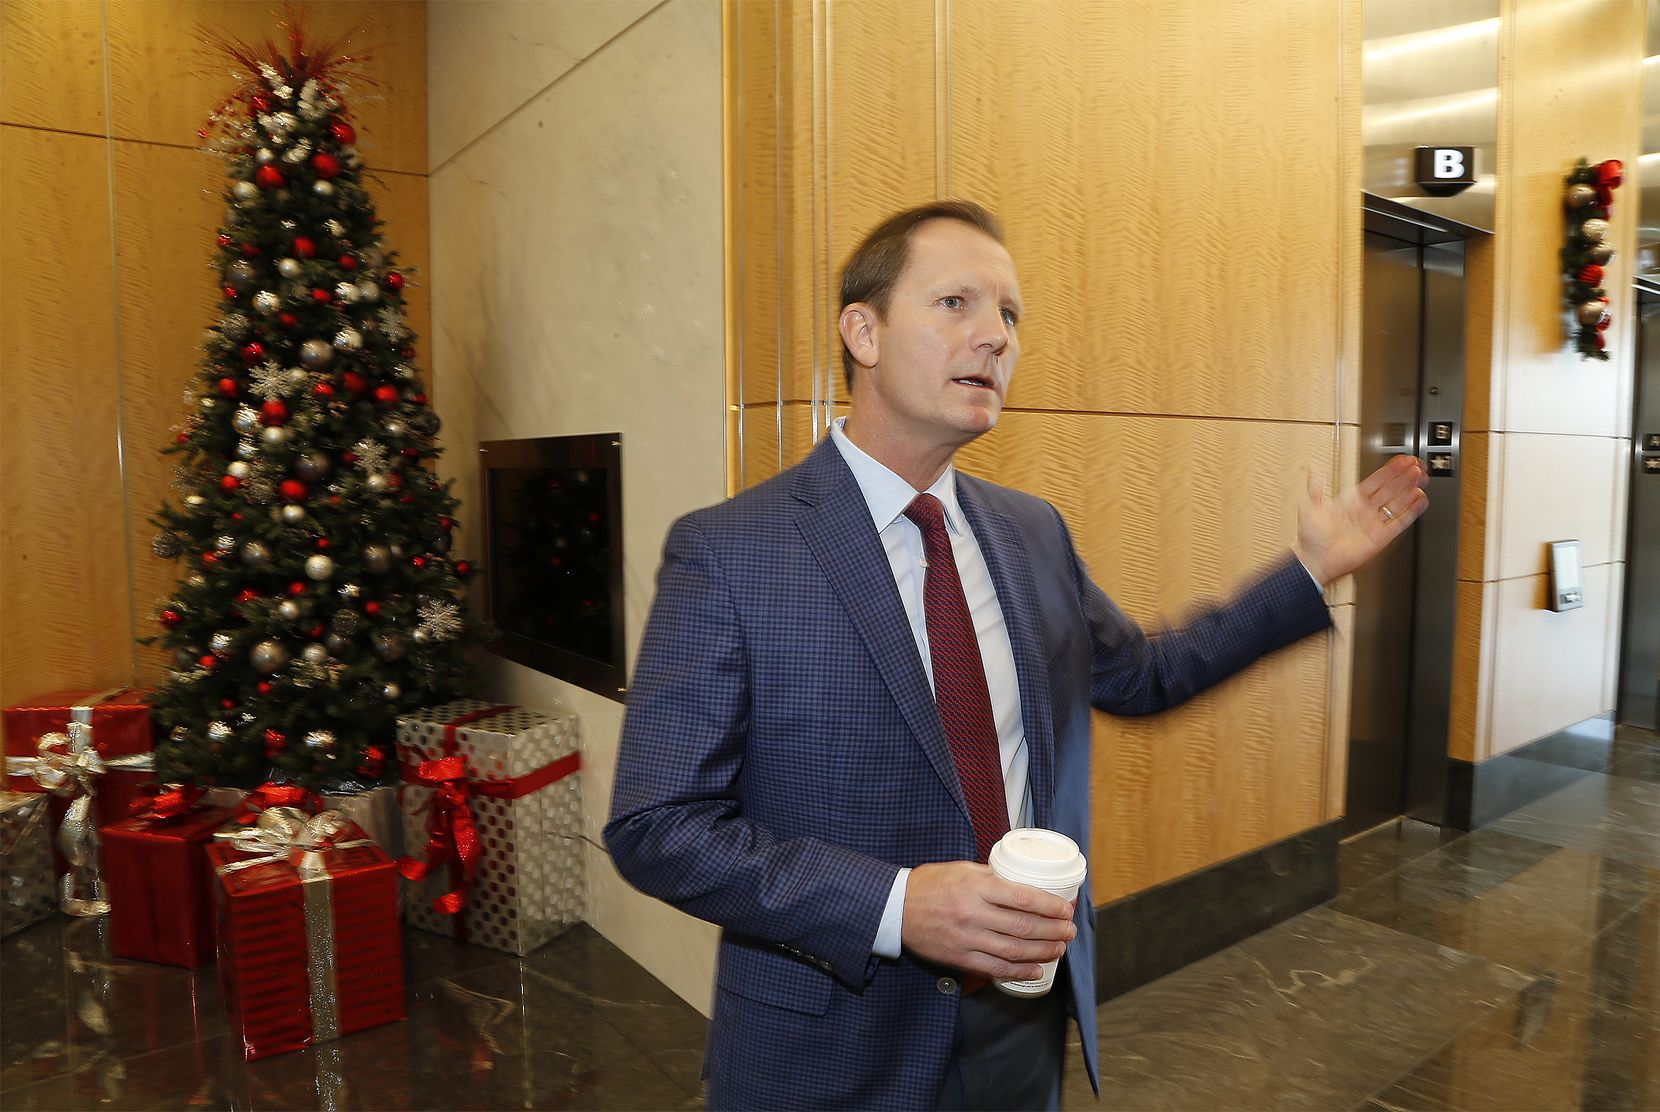 Geoff Meyer, executive vice president for VanTrust Real Estate LLC, at Frisco Station, which is opening its first phase.